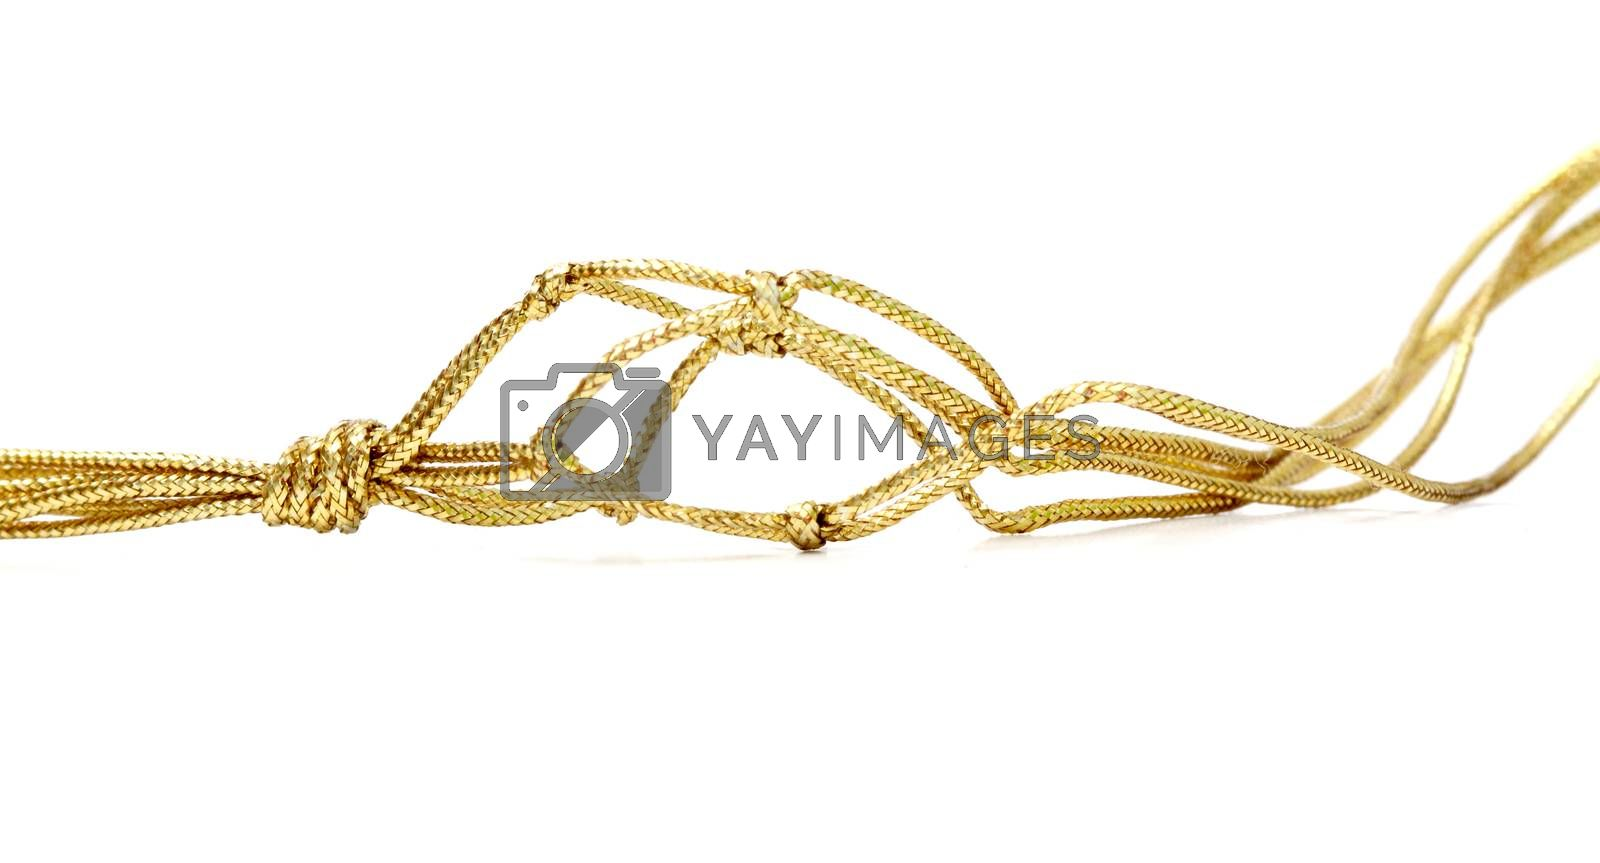 Royalty free image of gold colored rope by nehru